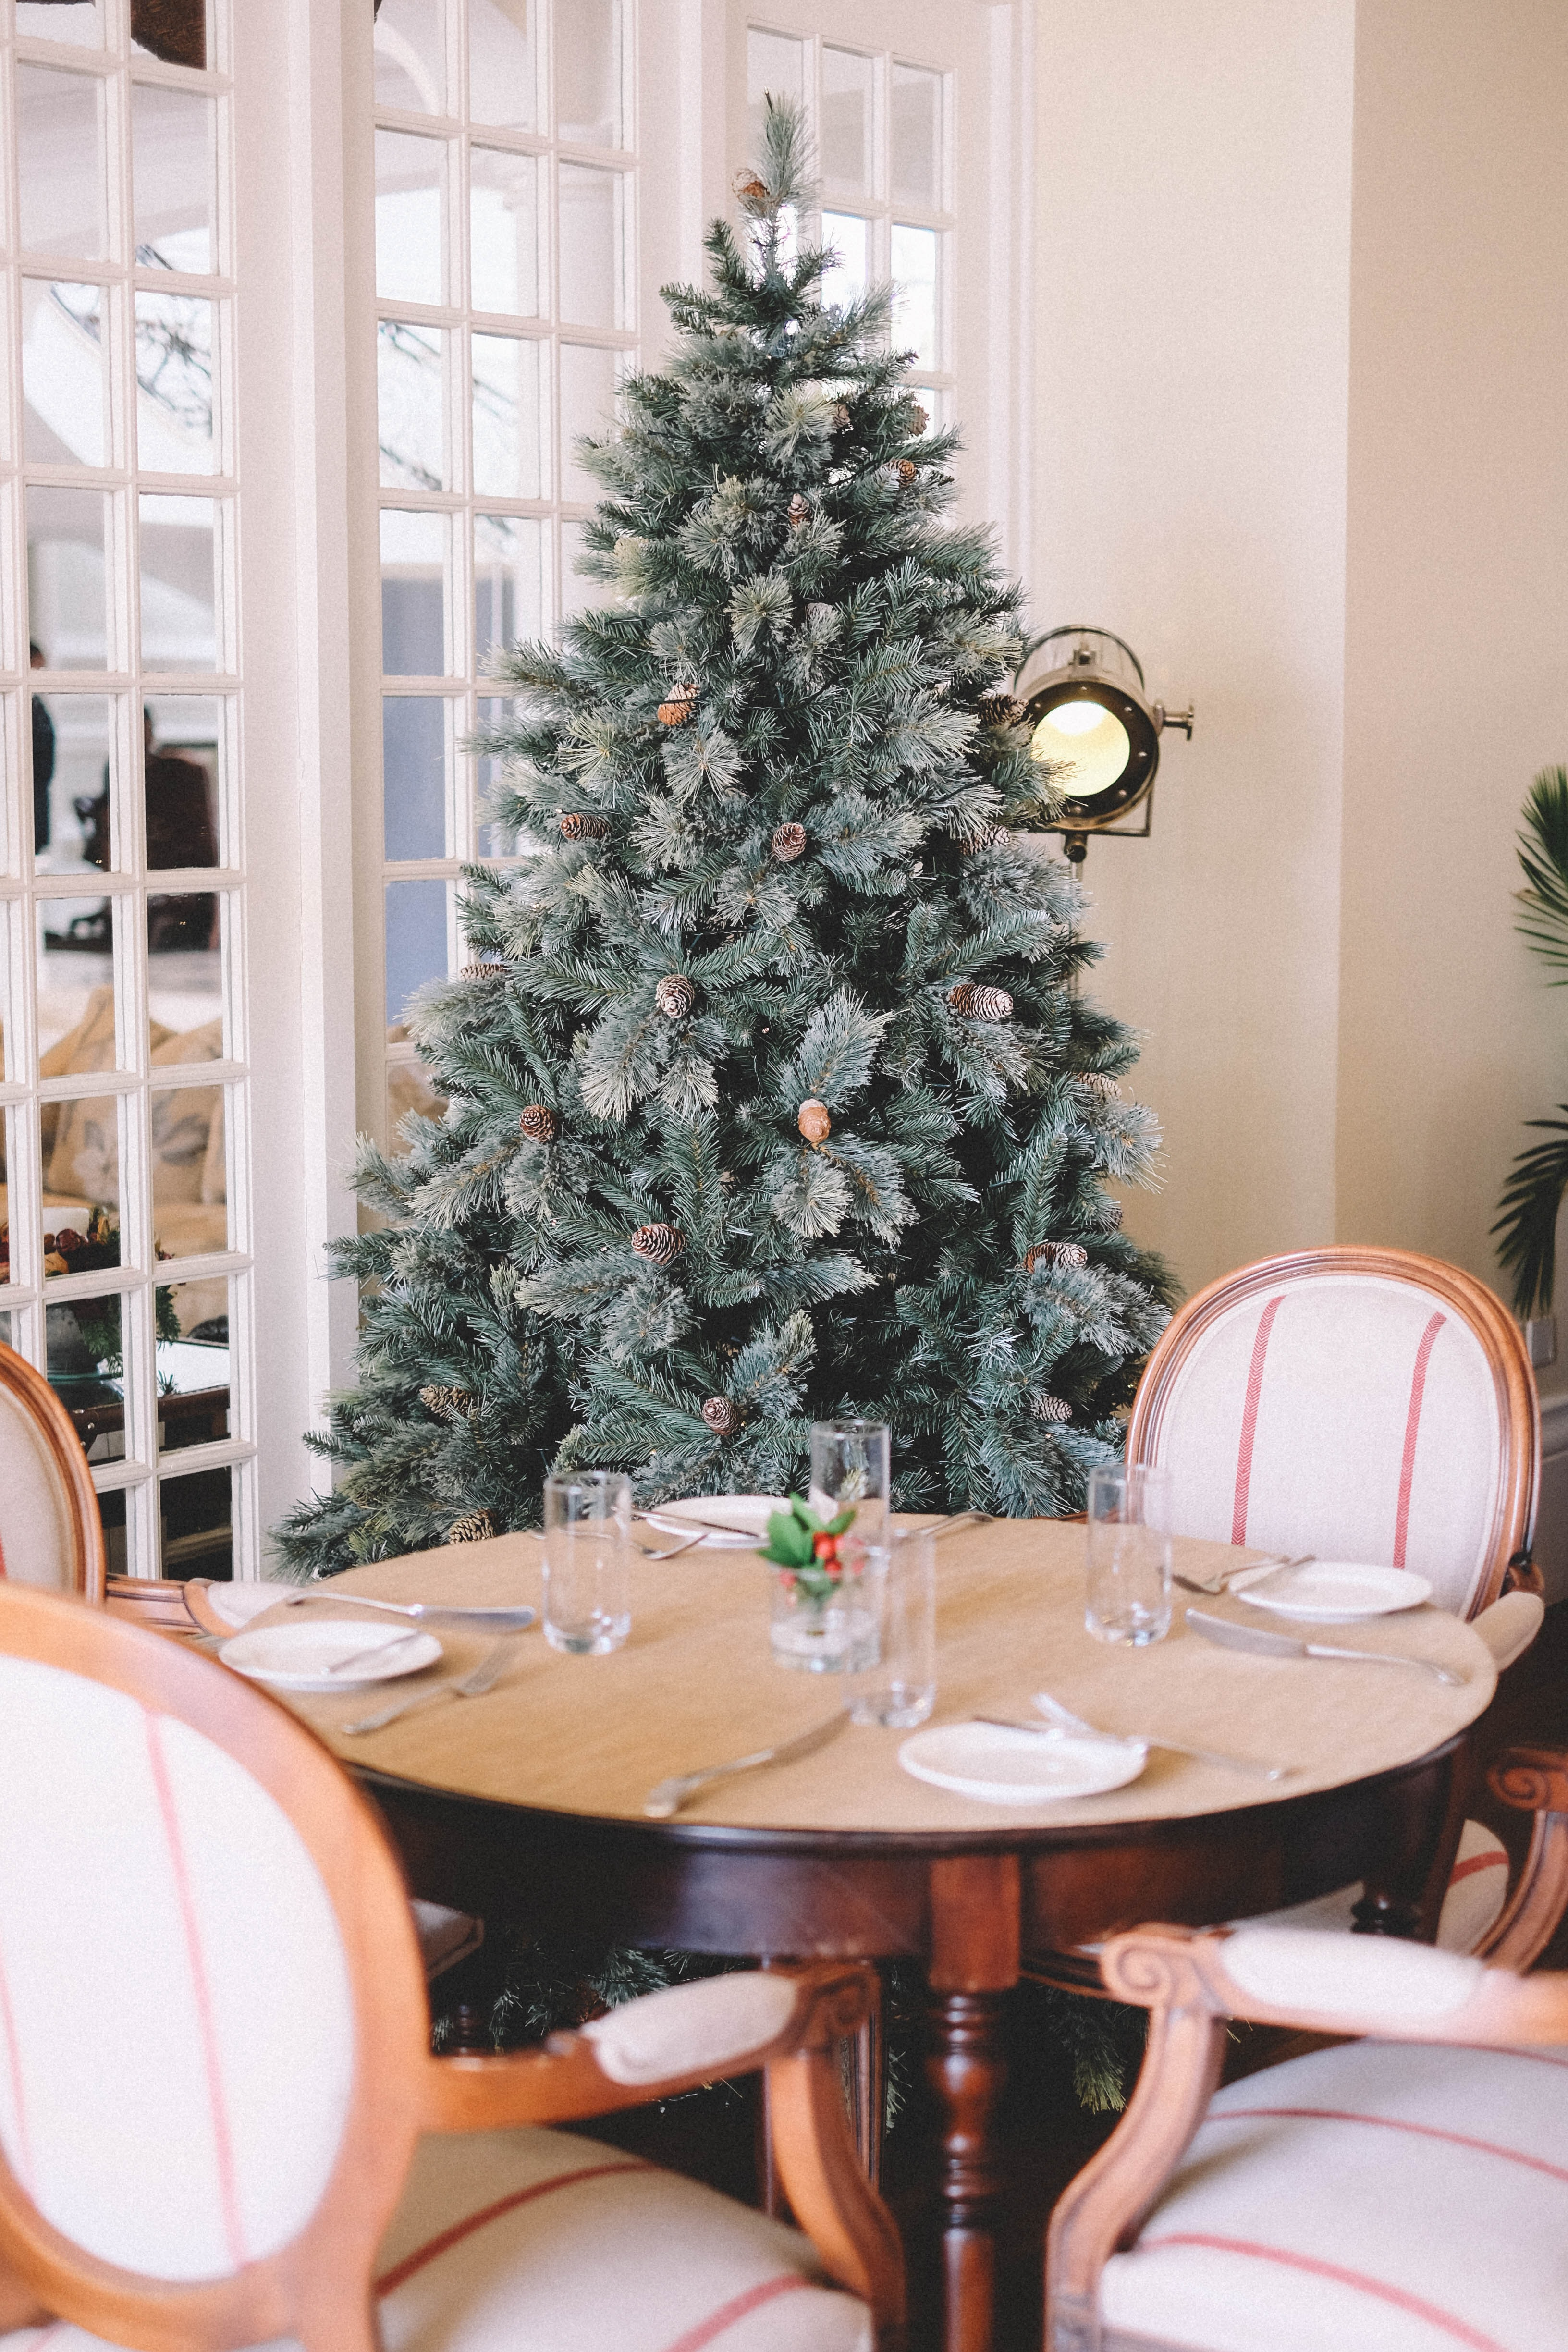 pre-lit tree behind dining set